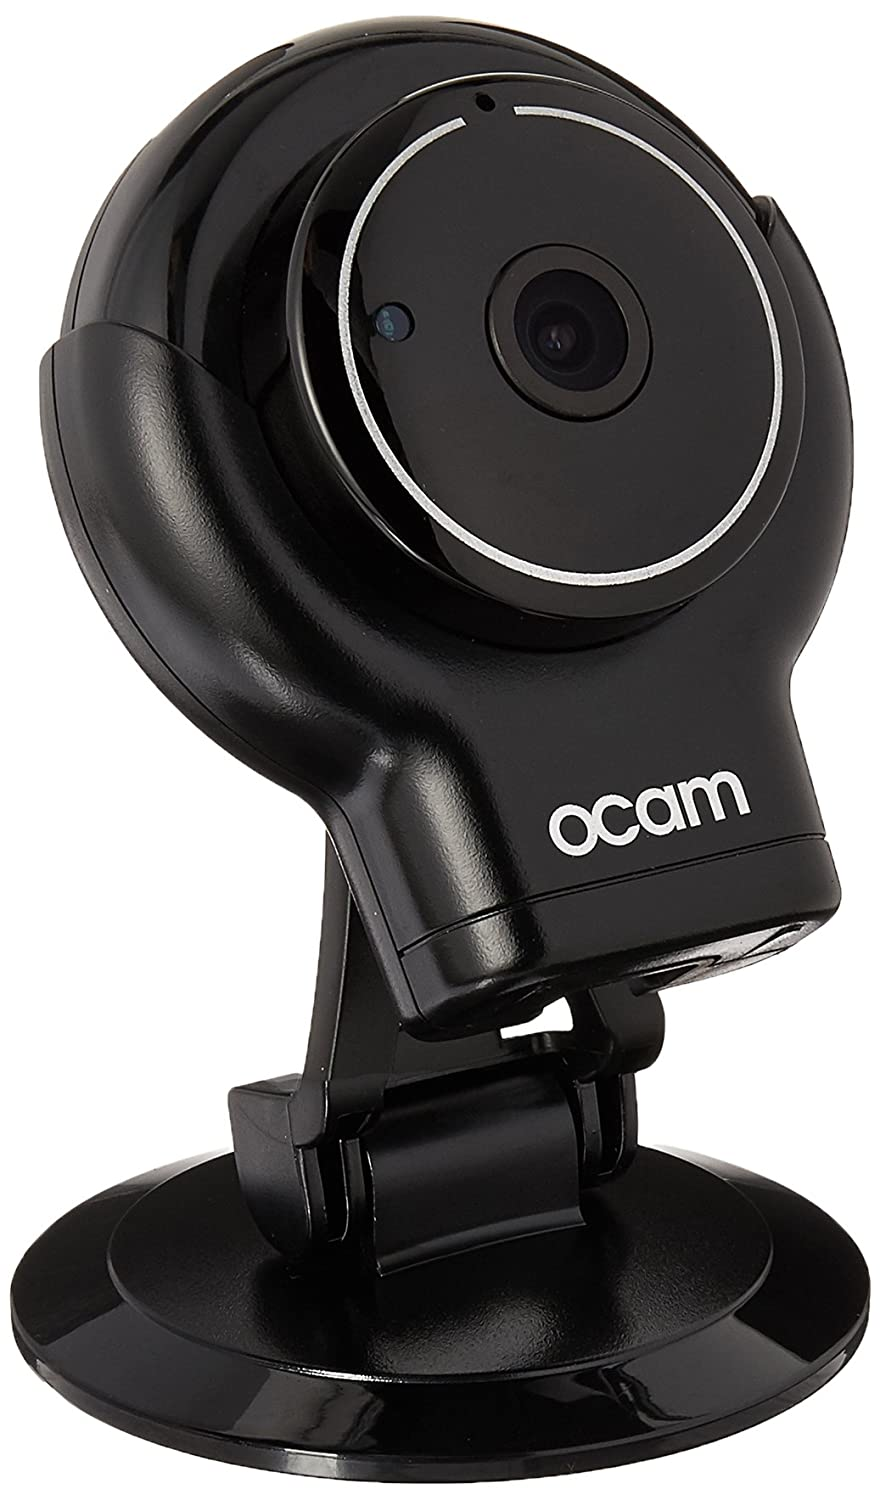 OCam+ S1 Wi-Fi Baby Monitor Security Video Camera & Nanny Cam iPhone iPad  iOS Android